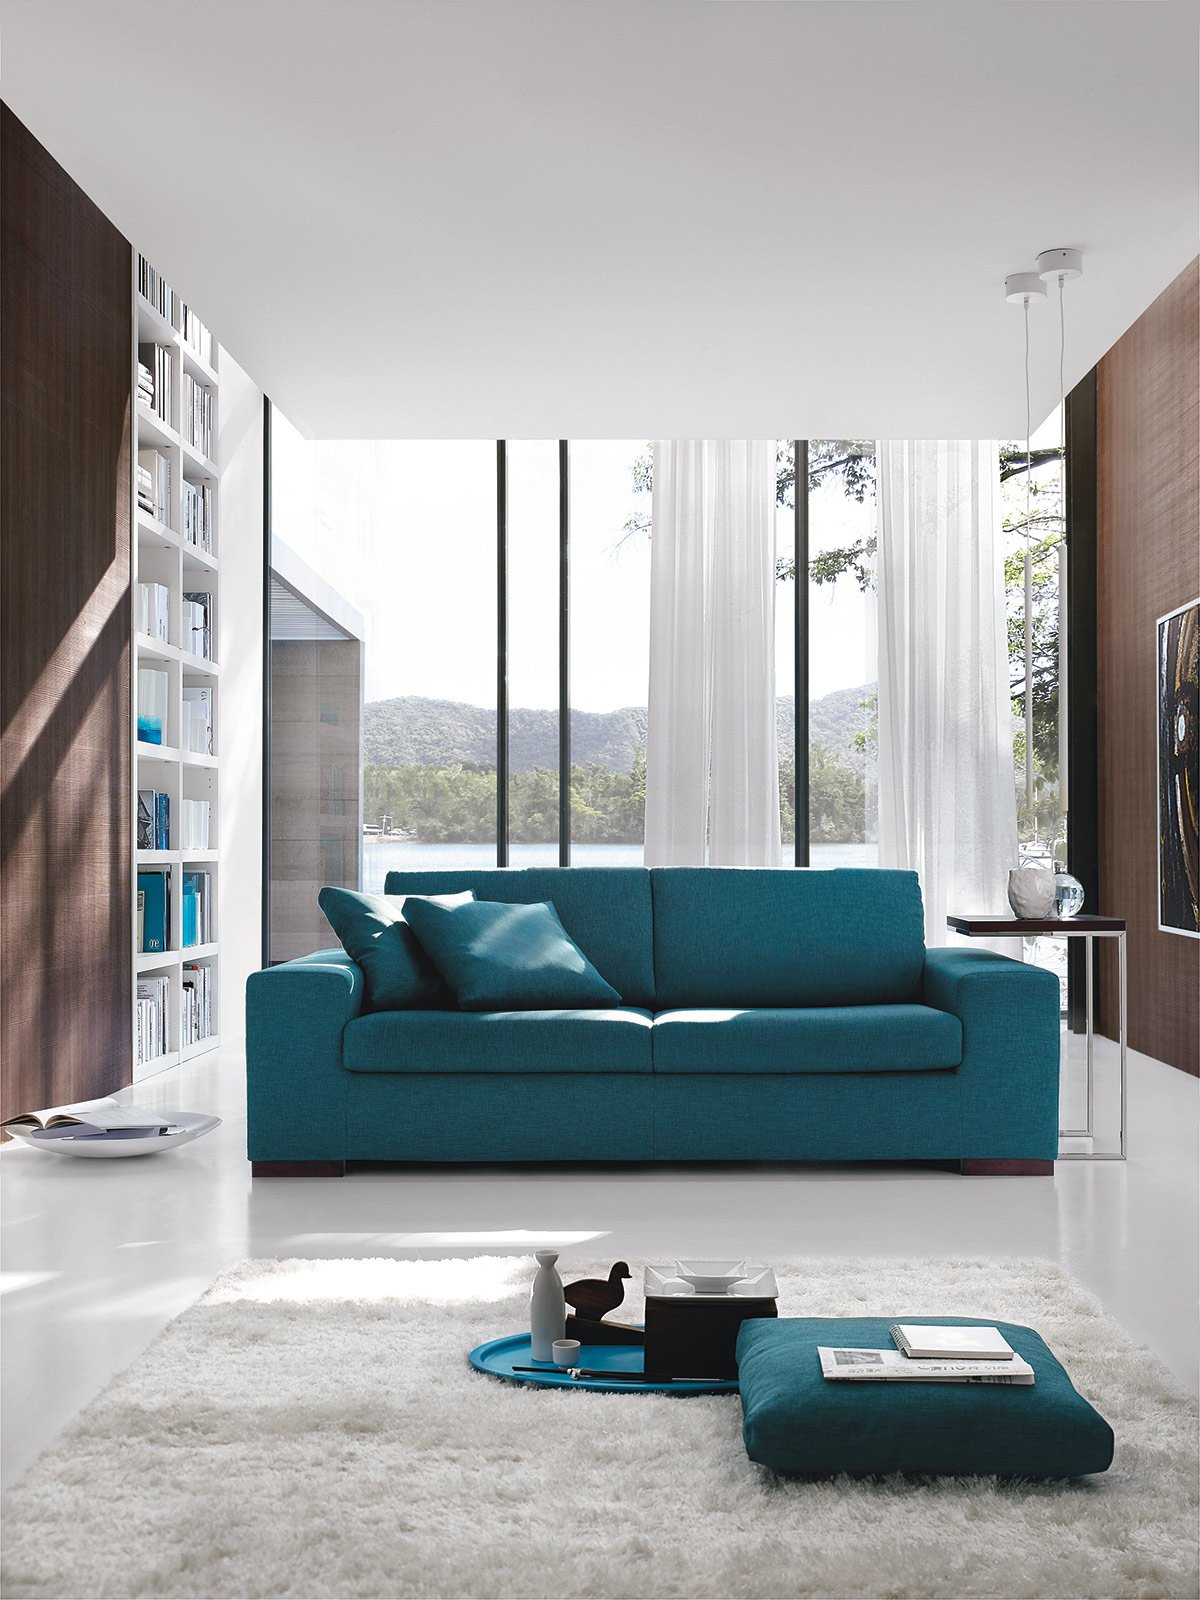 Divani blu cose di casa for Design salotti